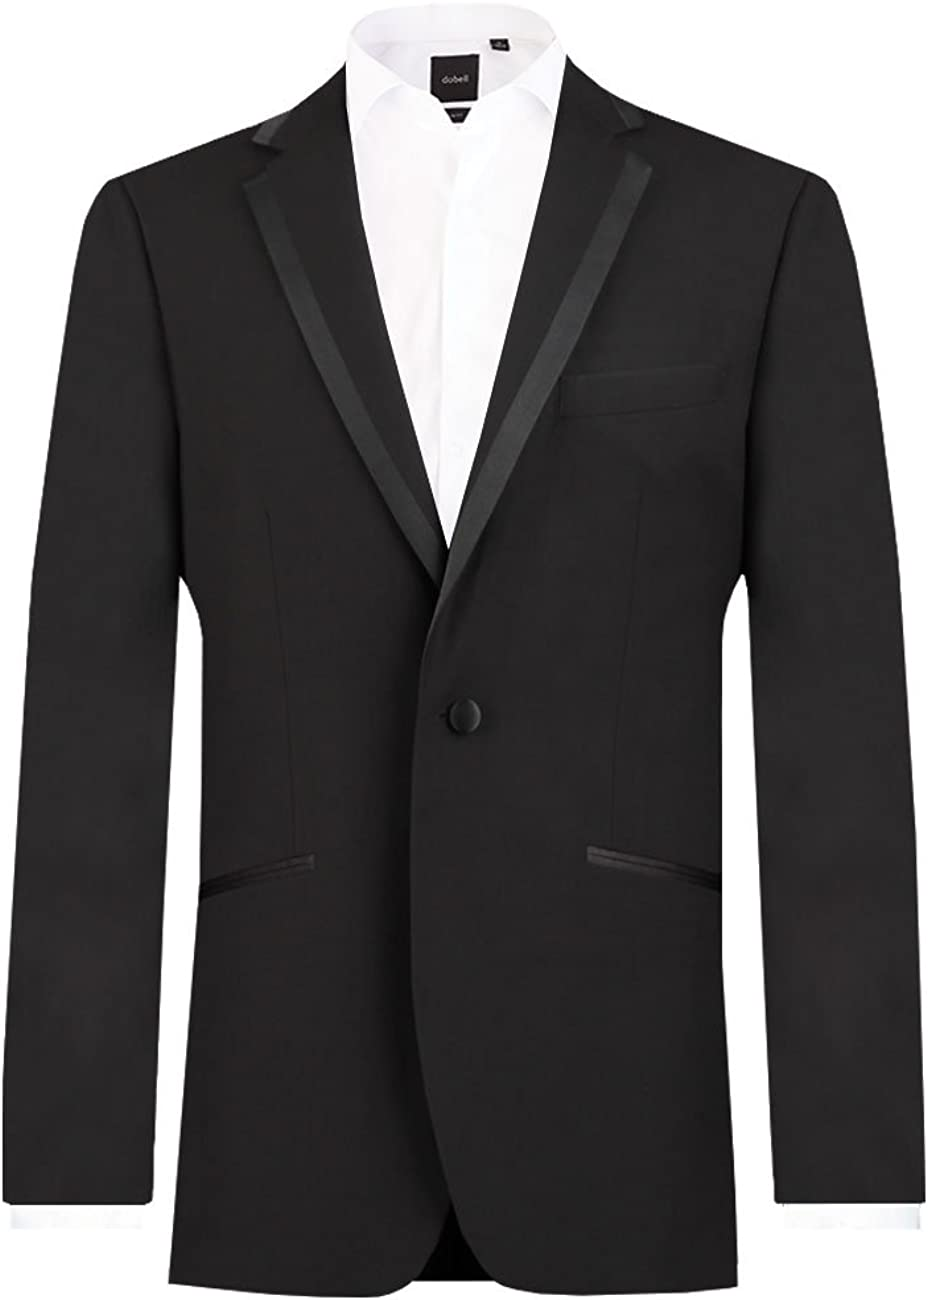 1970s Men's Suits History | Sport Coats & Tuxedos Dobell Mens Black Tuxedo Dinner Jacket Regular Fit Notch Lapel Satin Trim £64.99 AT vintagedancer.com